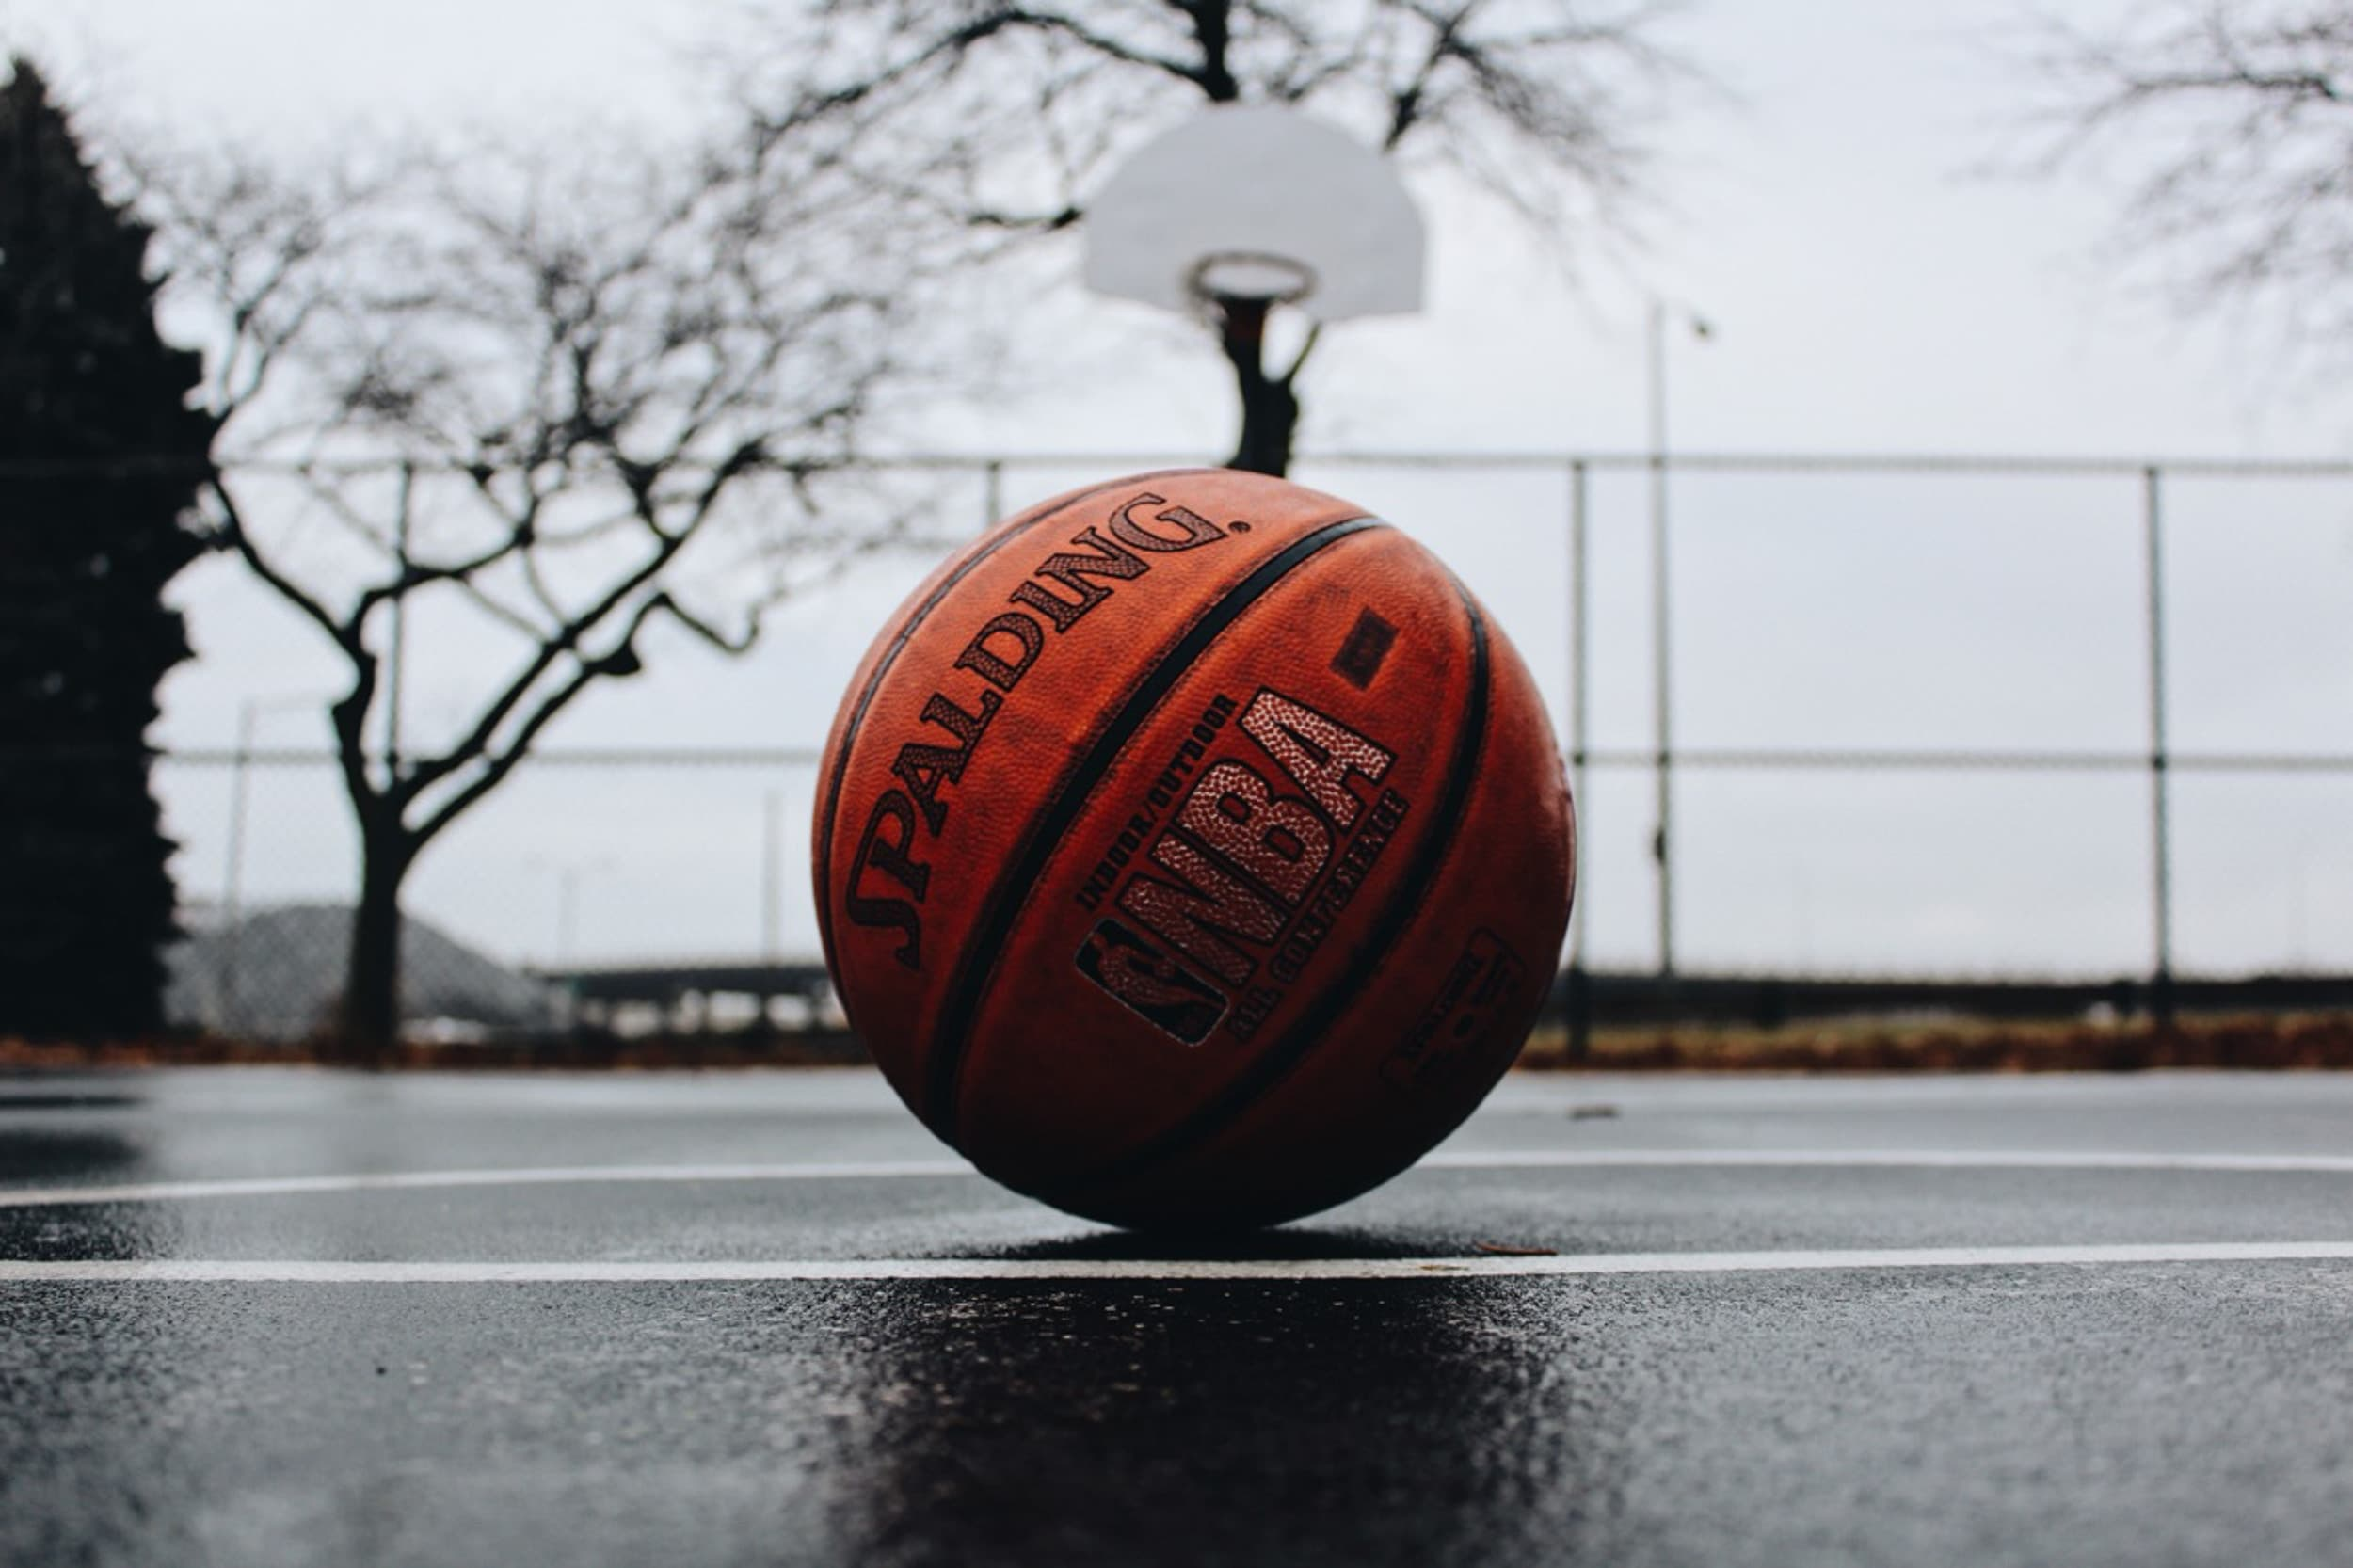 Spalding NBA basketball on a blacktop court on a rainy day